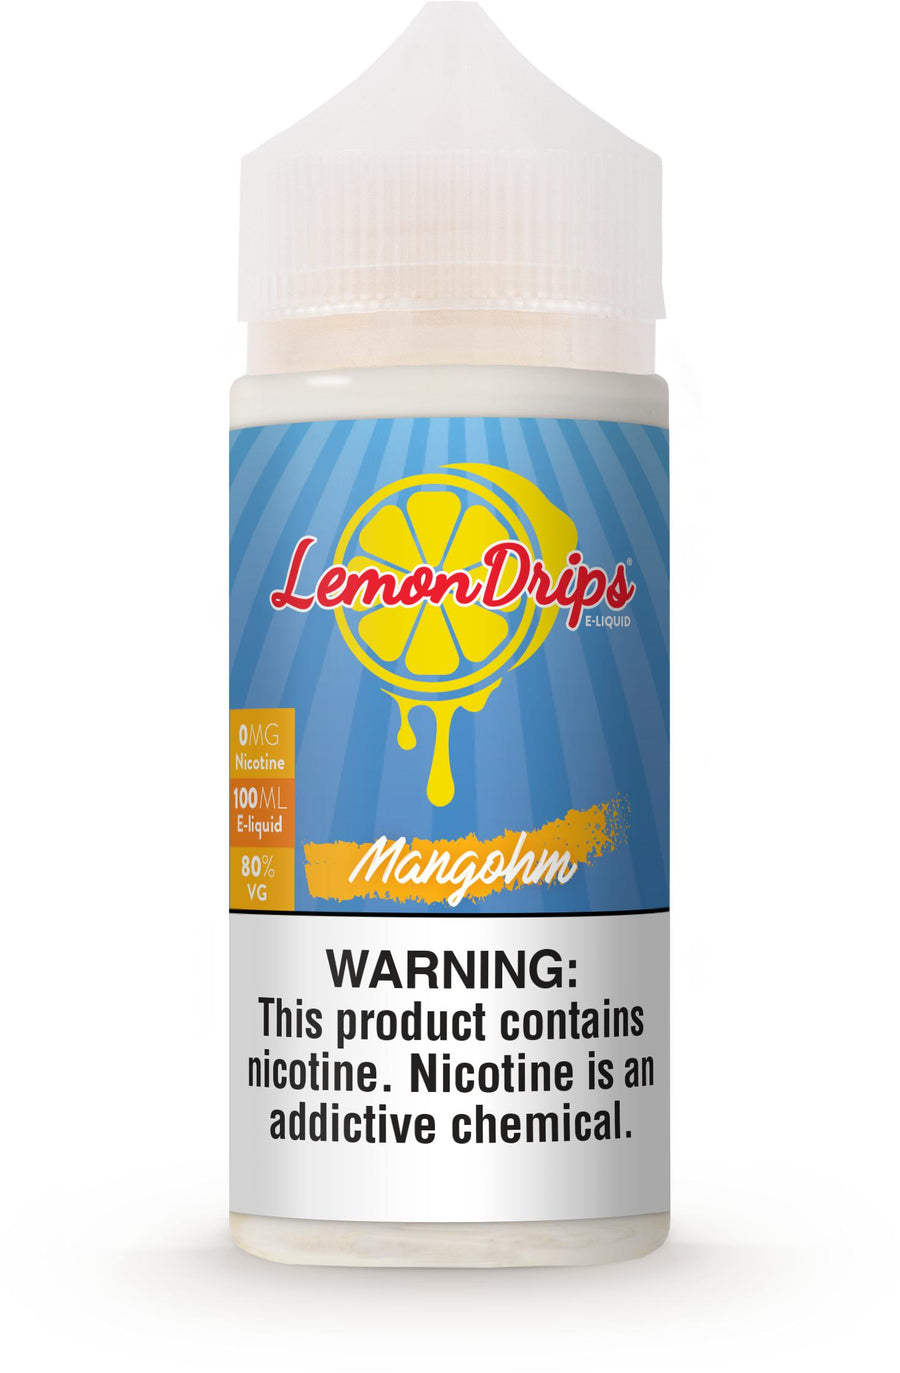 100 mL LemonDrips - Mangohm